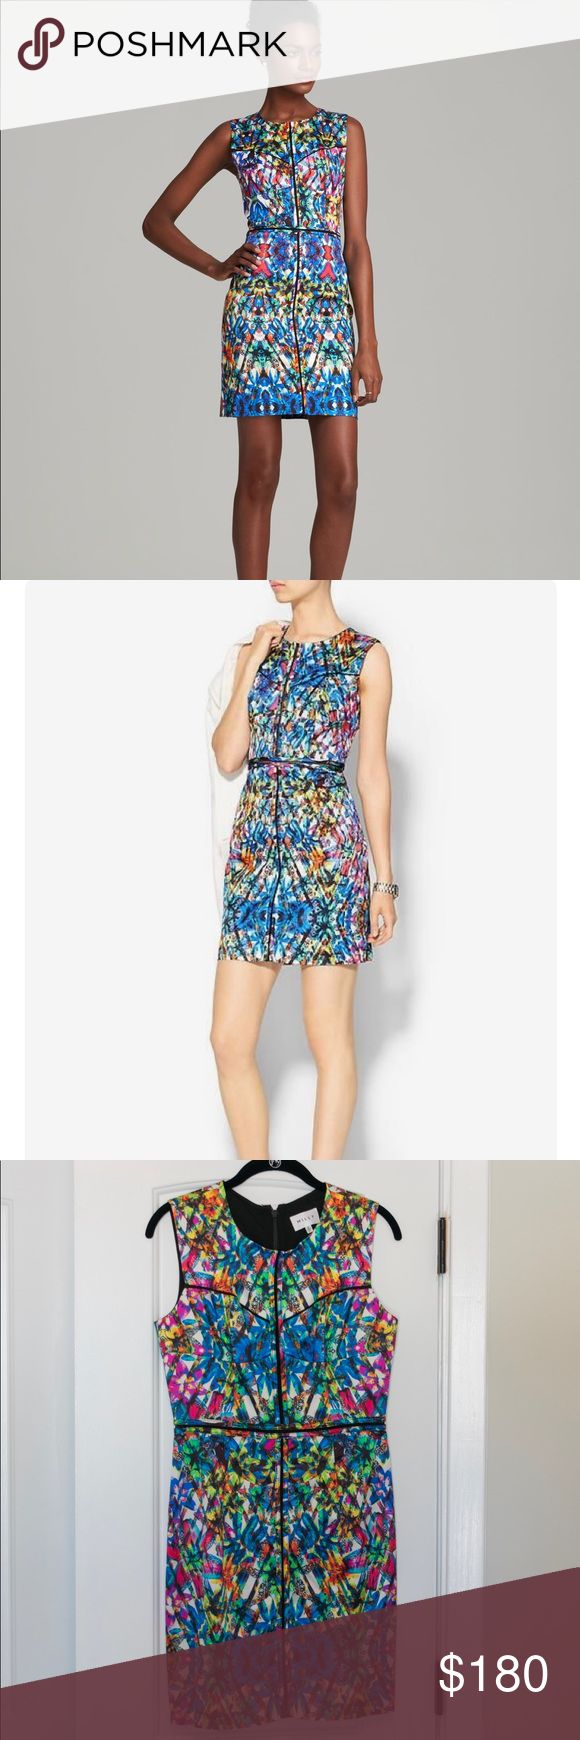 Milly Tropical Floral Dress - Size 6 Whoa is this a stunner! It has a sheer detailed portion through the center seam on top and around the waist. Perfect for a hot night out or vacation! Worn only once for a wedding. Milly Dresses Mini